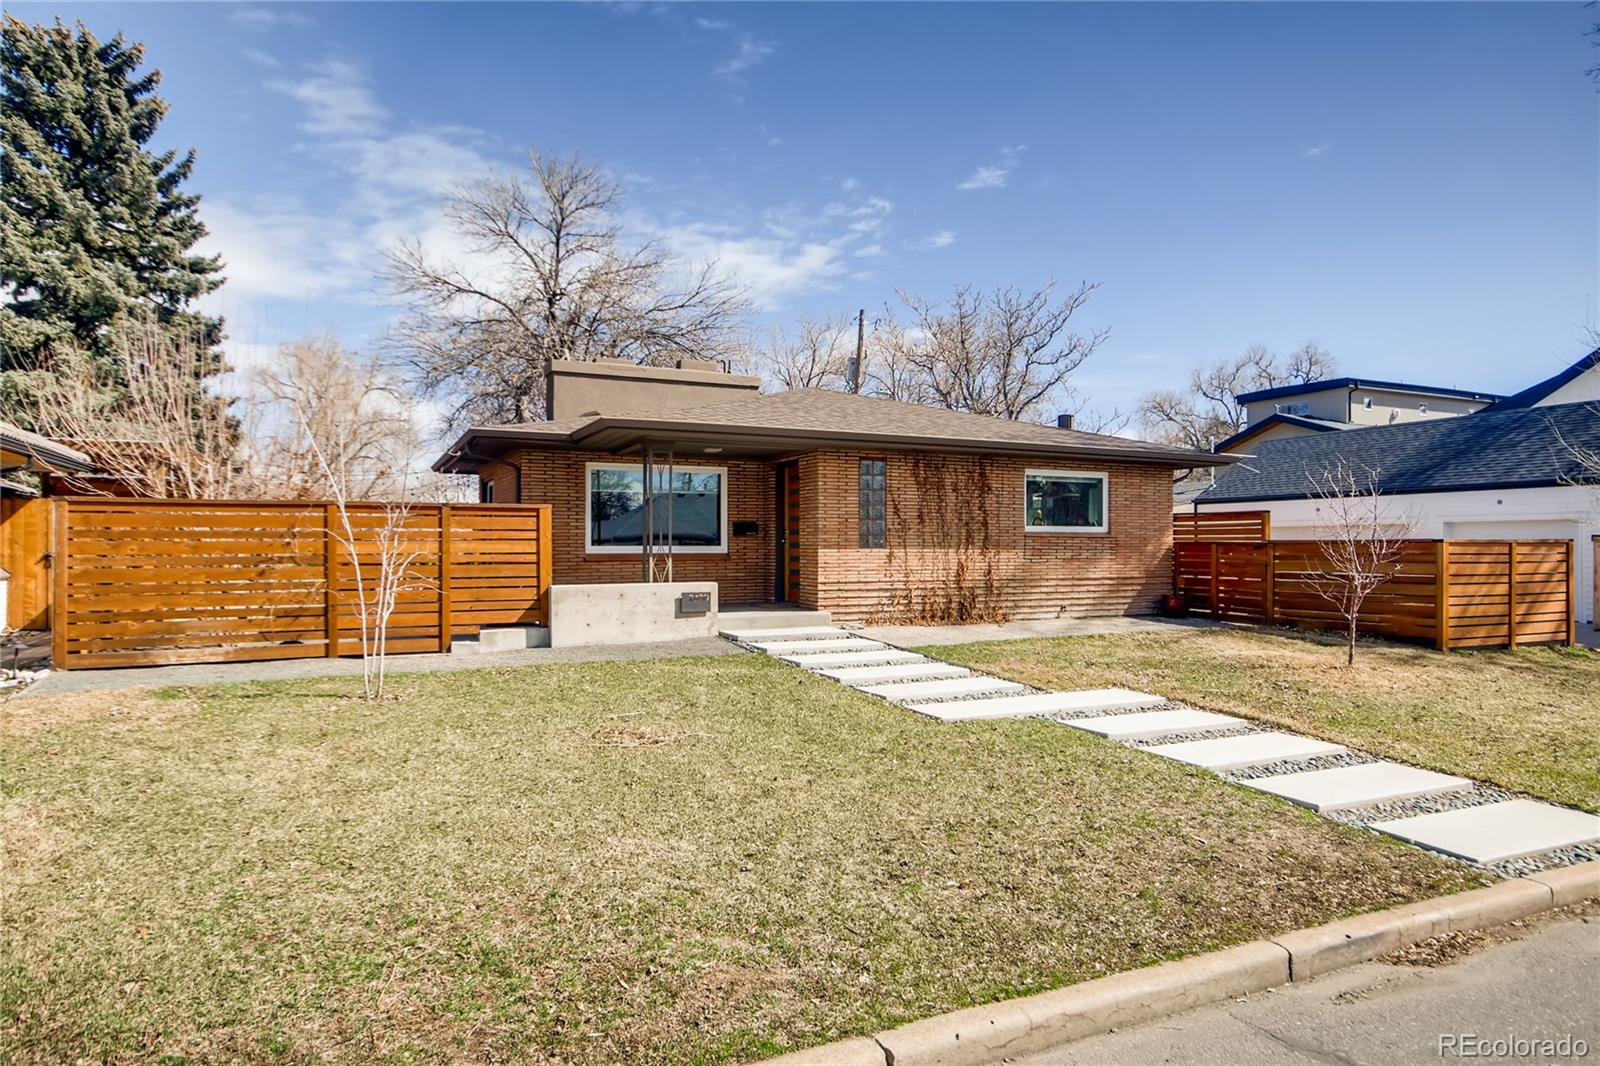 MLS# 6749846 - 2 - 2480 Perry Street, Denver, CO 80212